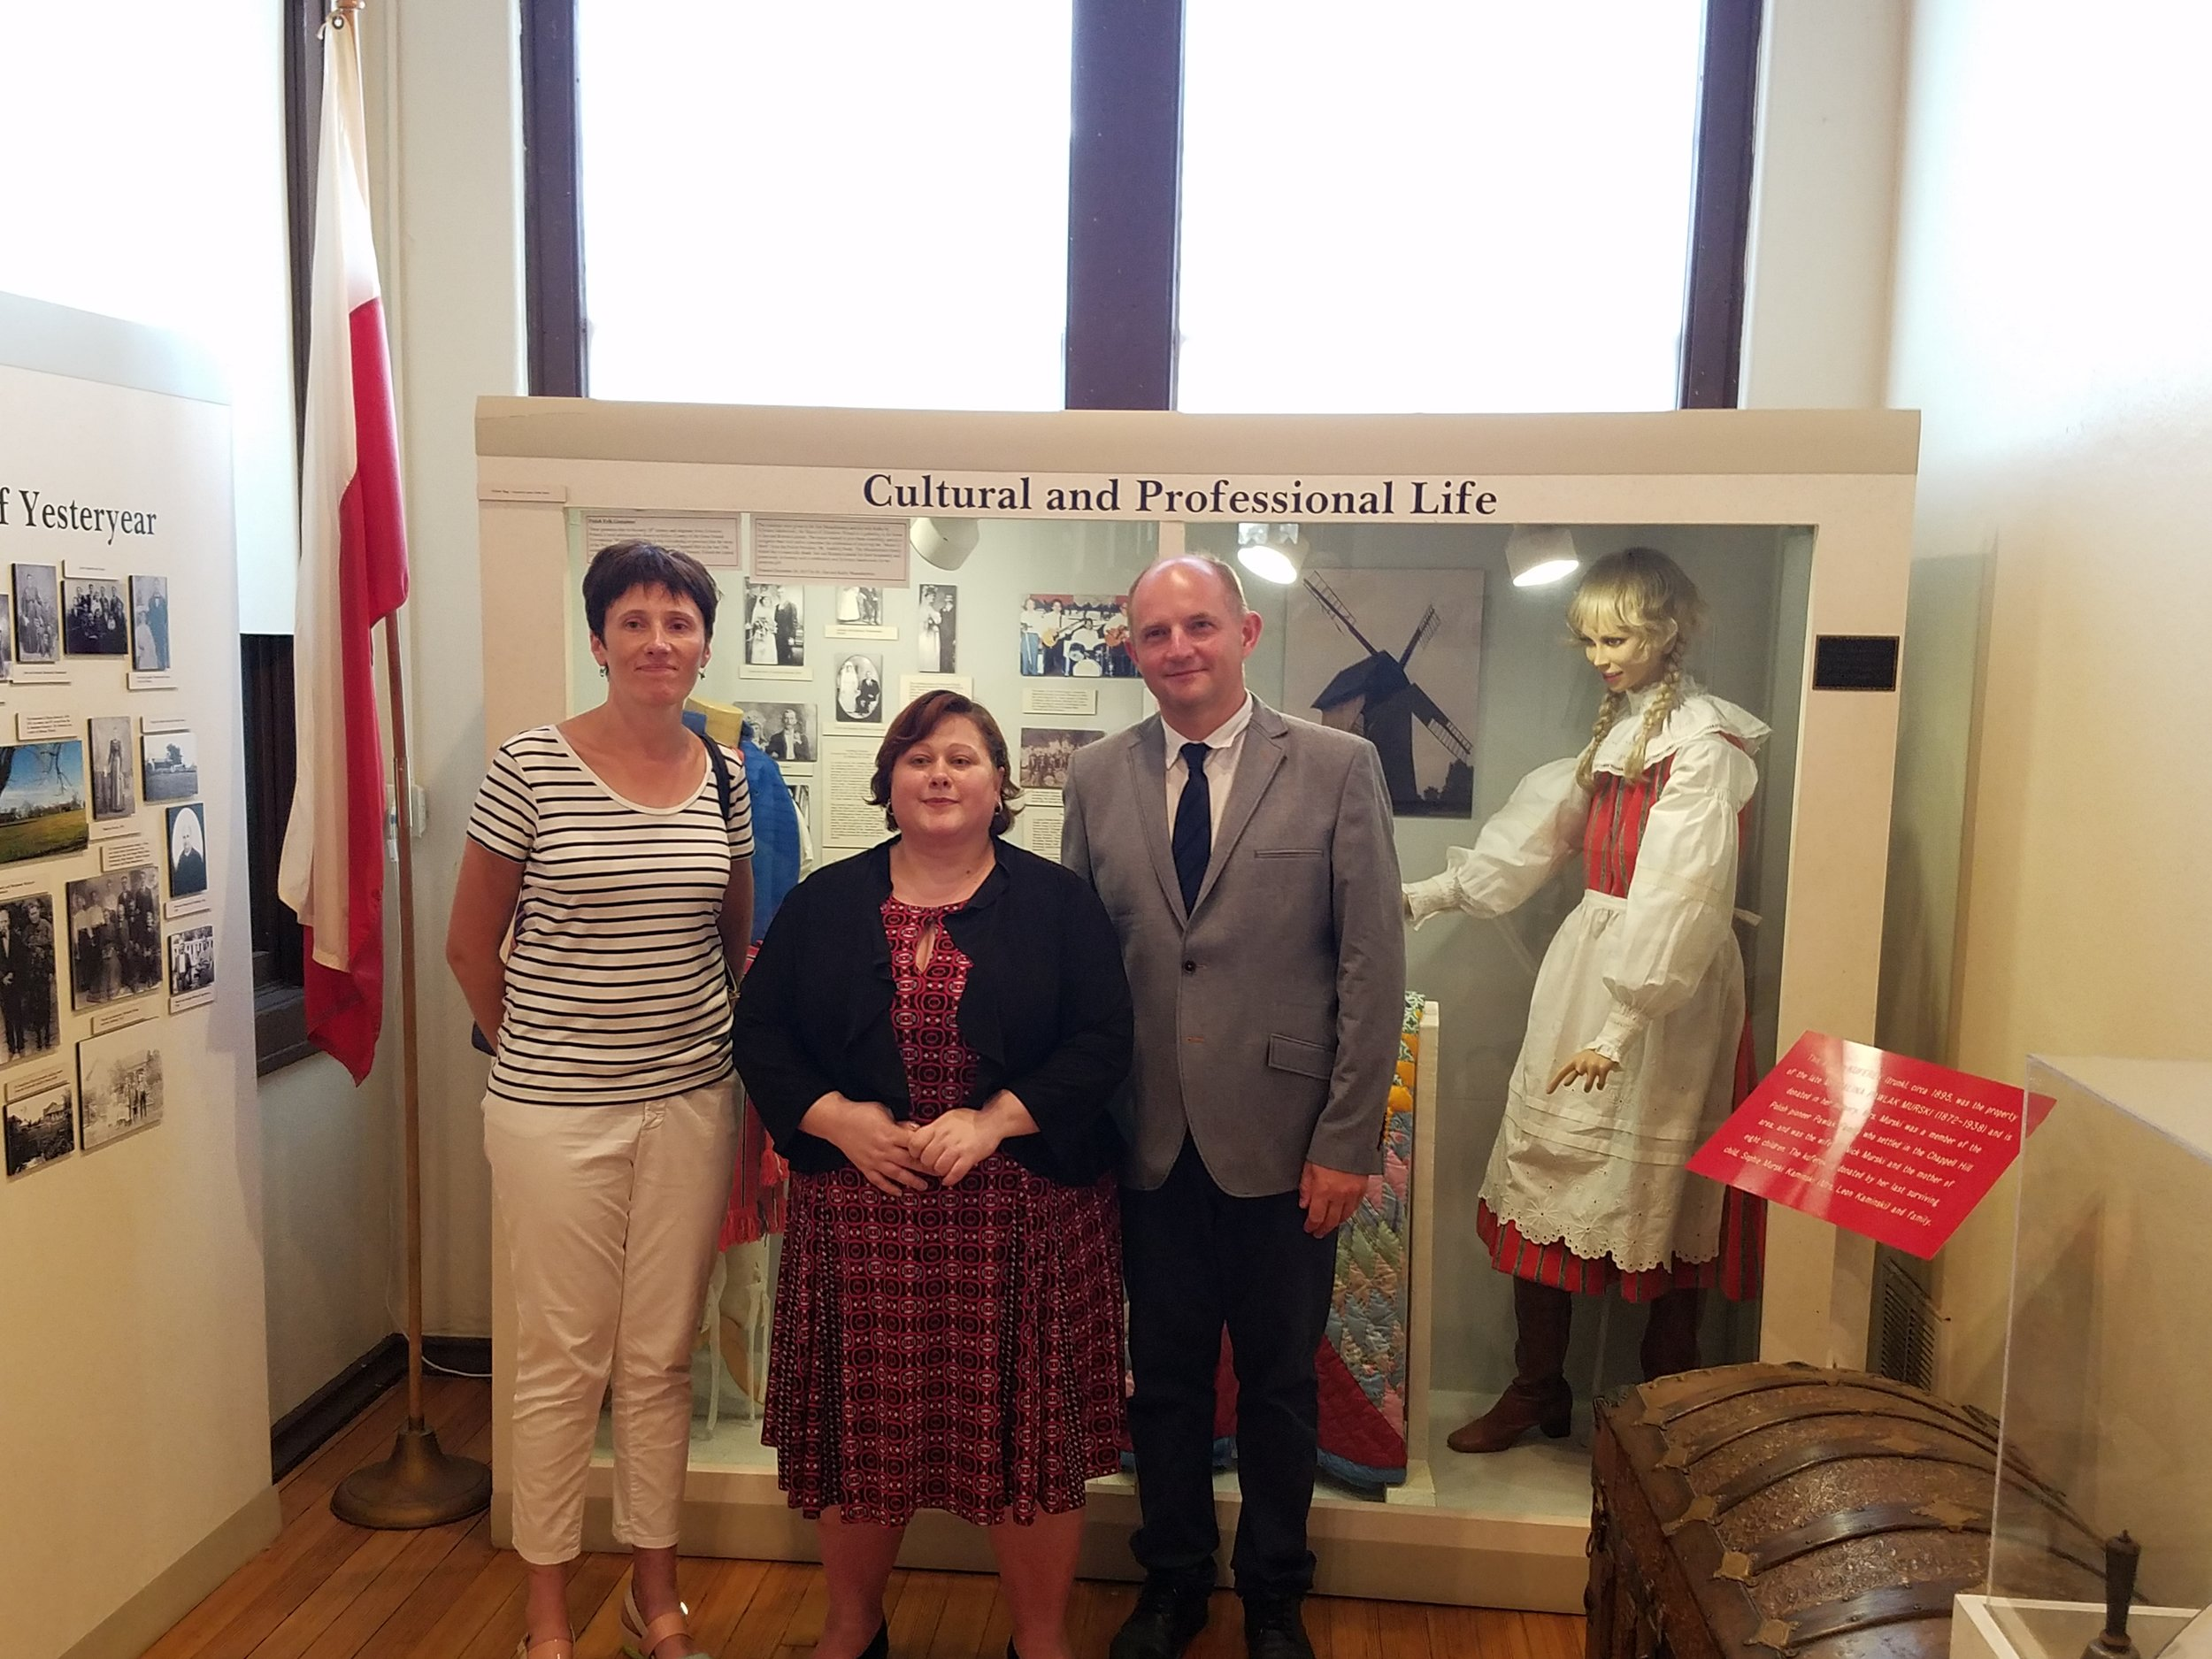 Christine Hoffman (center) with the Honorable Piotr Całbecki, Marszałek (Governor) of Kujawsko-Pomorskiego, Toruń, Poland and his wife, Dagna Całbecki. They honored CHHS Museum with a visit in July, 2017, which was a culmination of three years of developing stronger connections between the historical society and the local Polish descendant communities.